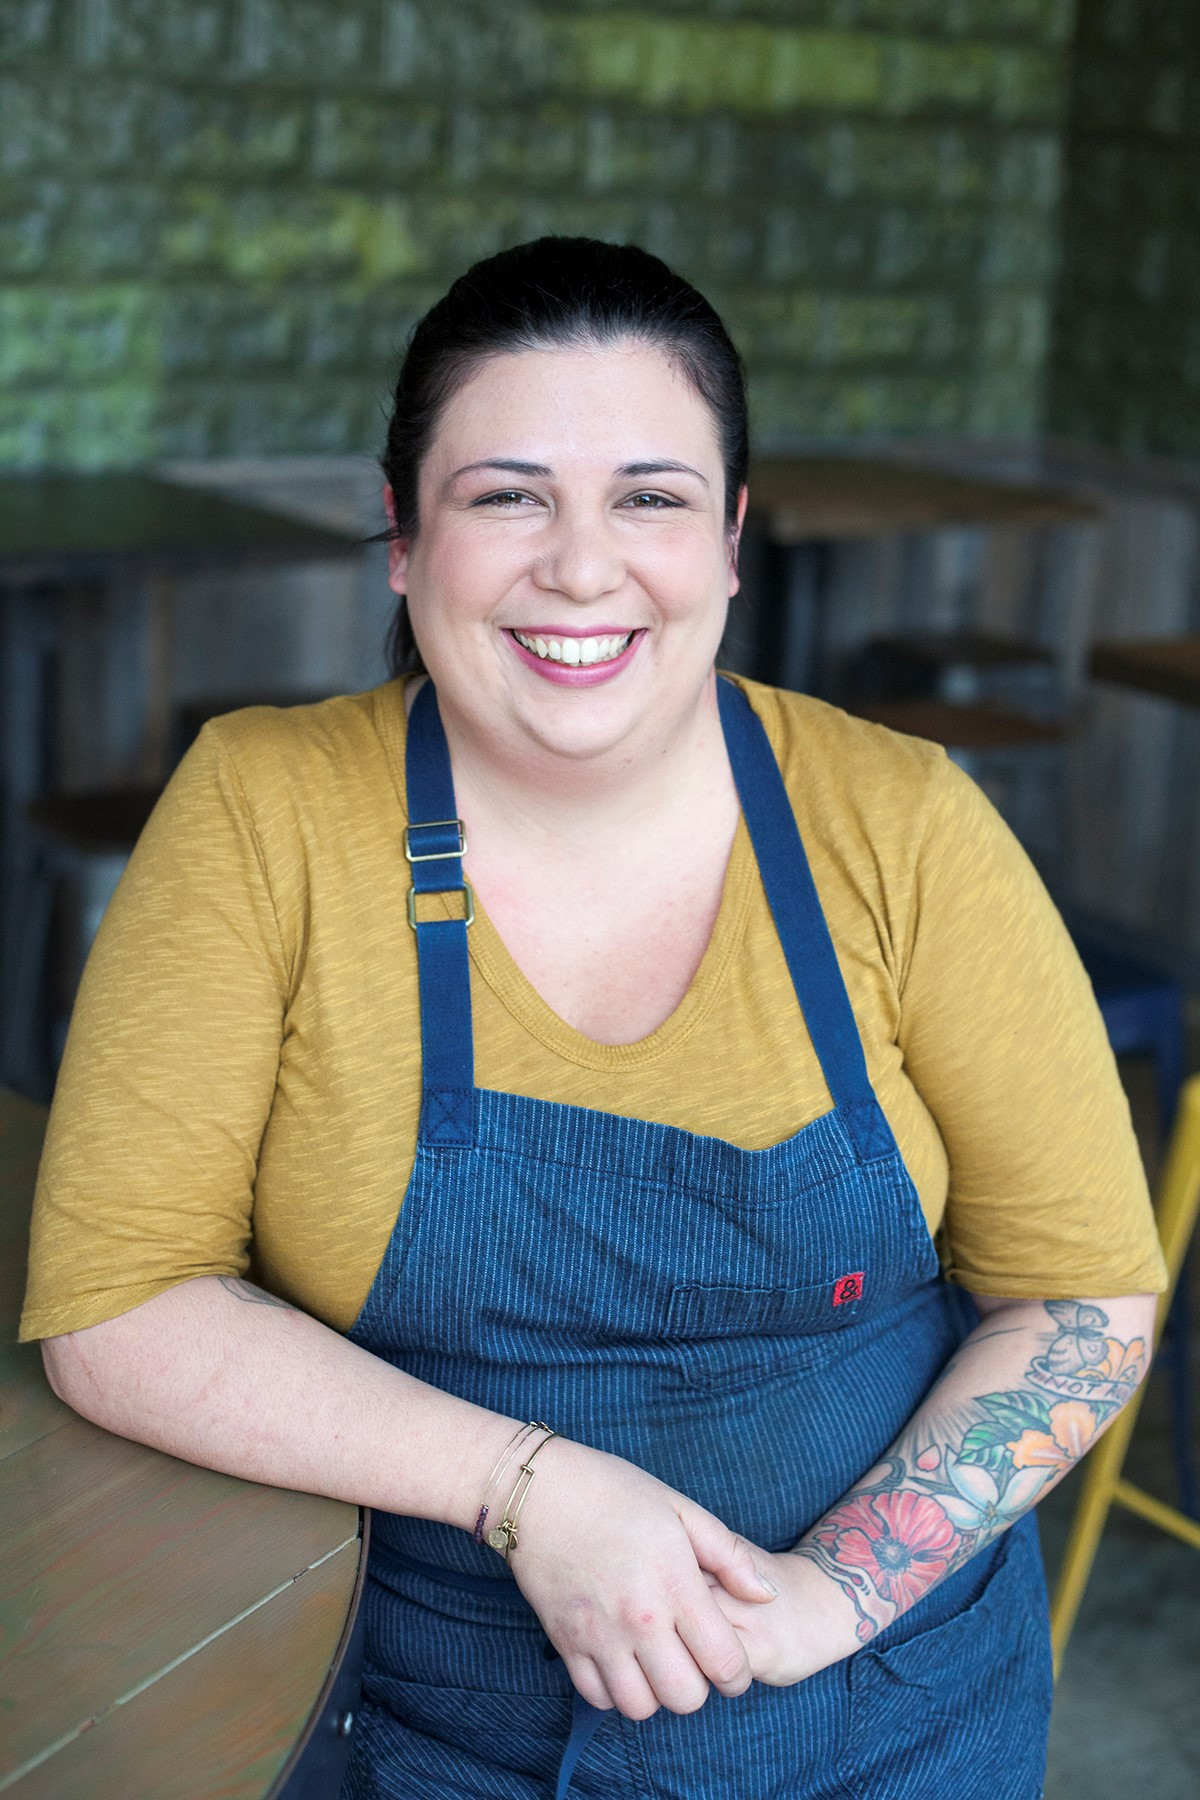 Marjorie Meek-Bradley  is a finalist for Chef of the Year. (Image: Courtesy St. Anselm)